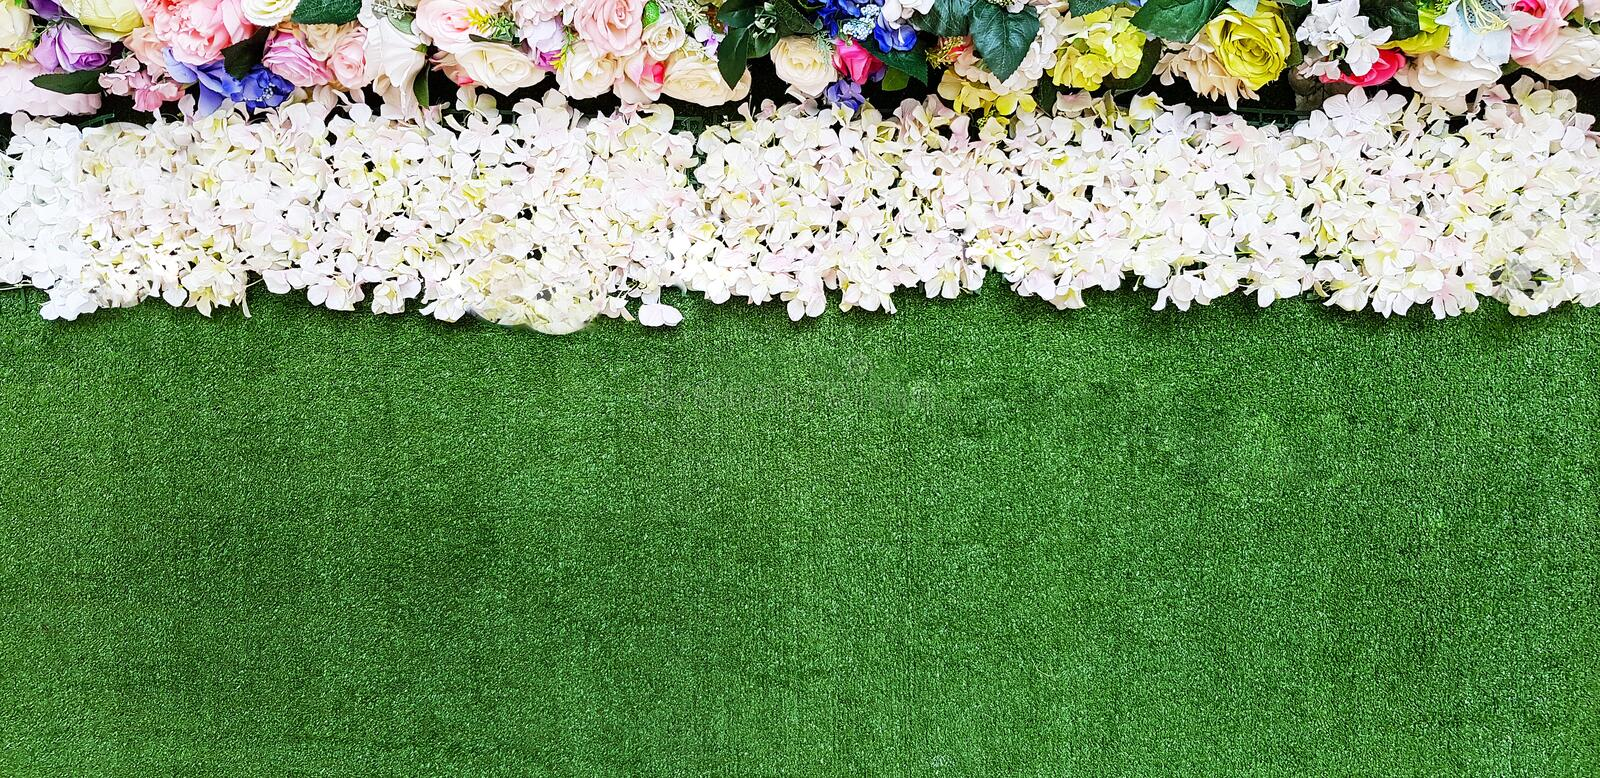 Green grass decorated with flowers for background and copy space. stock image